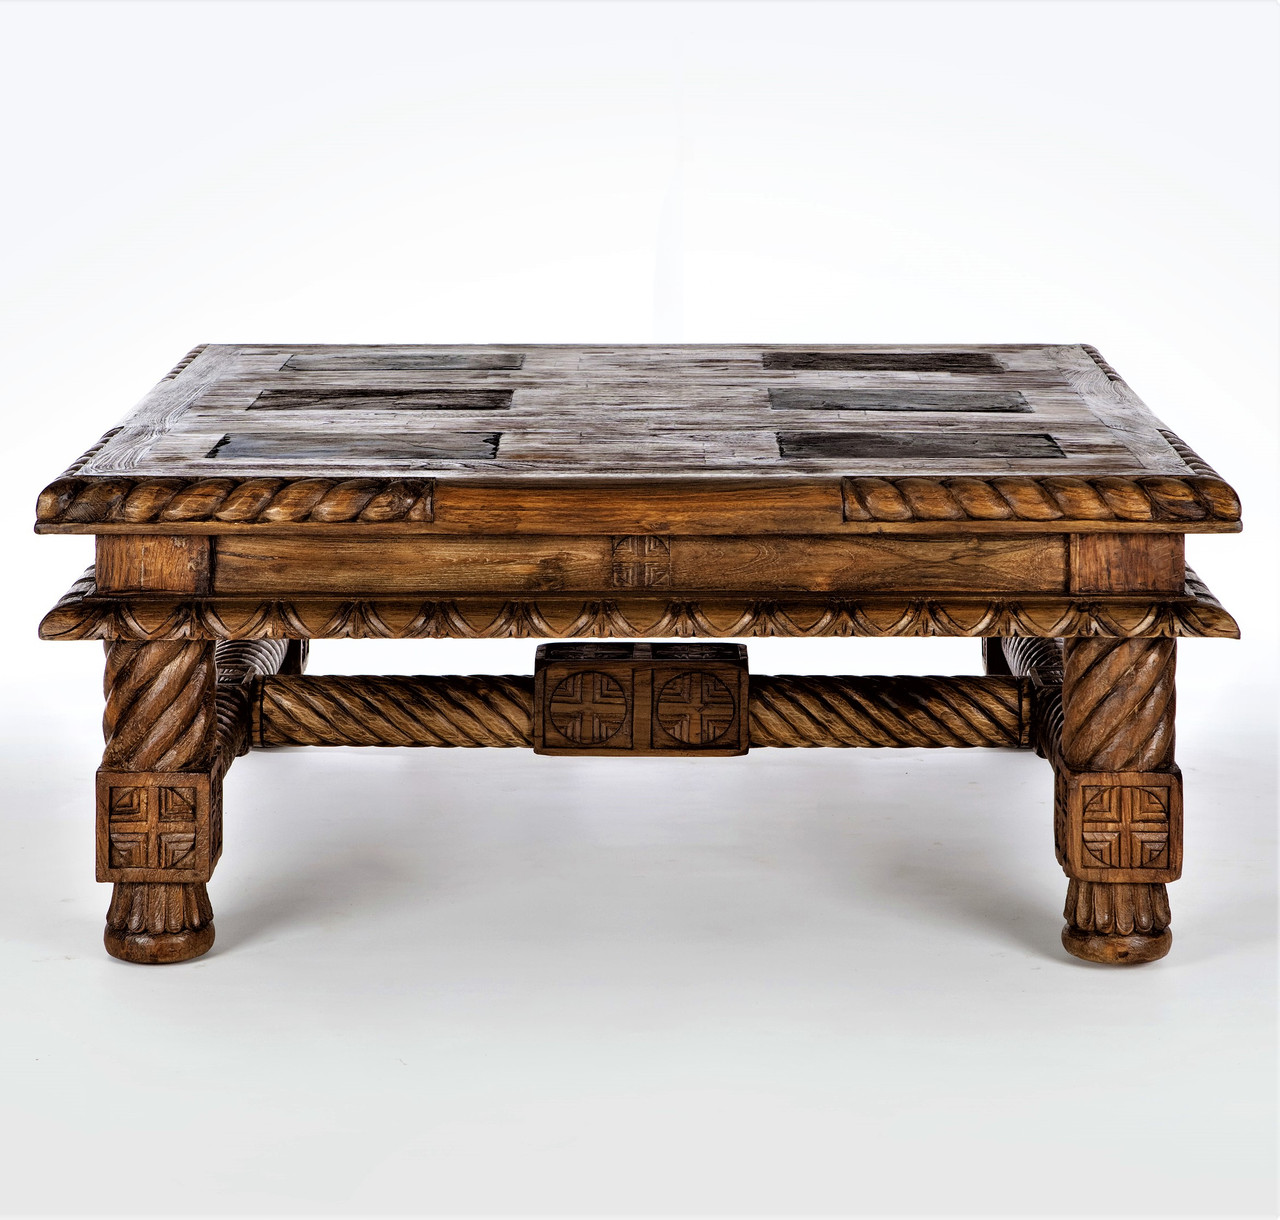 48 Square Inlaid Slate Coffee Table On Sale At Larrabee S Furniture Design Serving Littleton Co